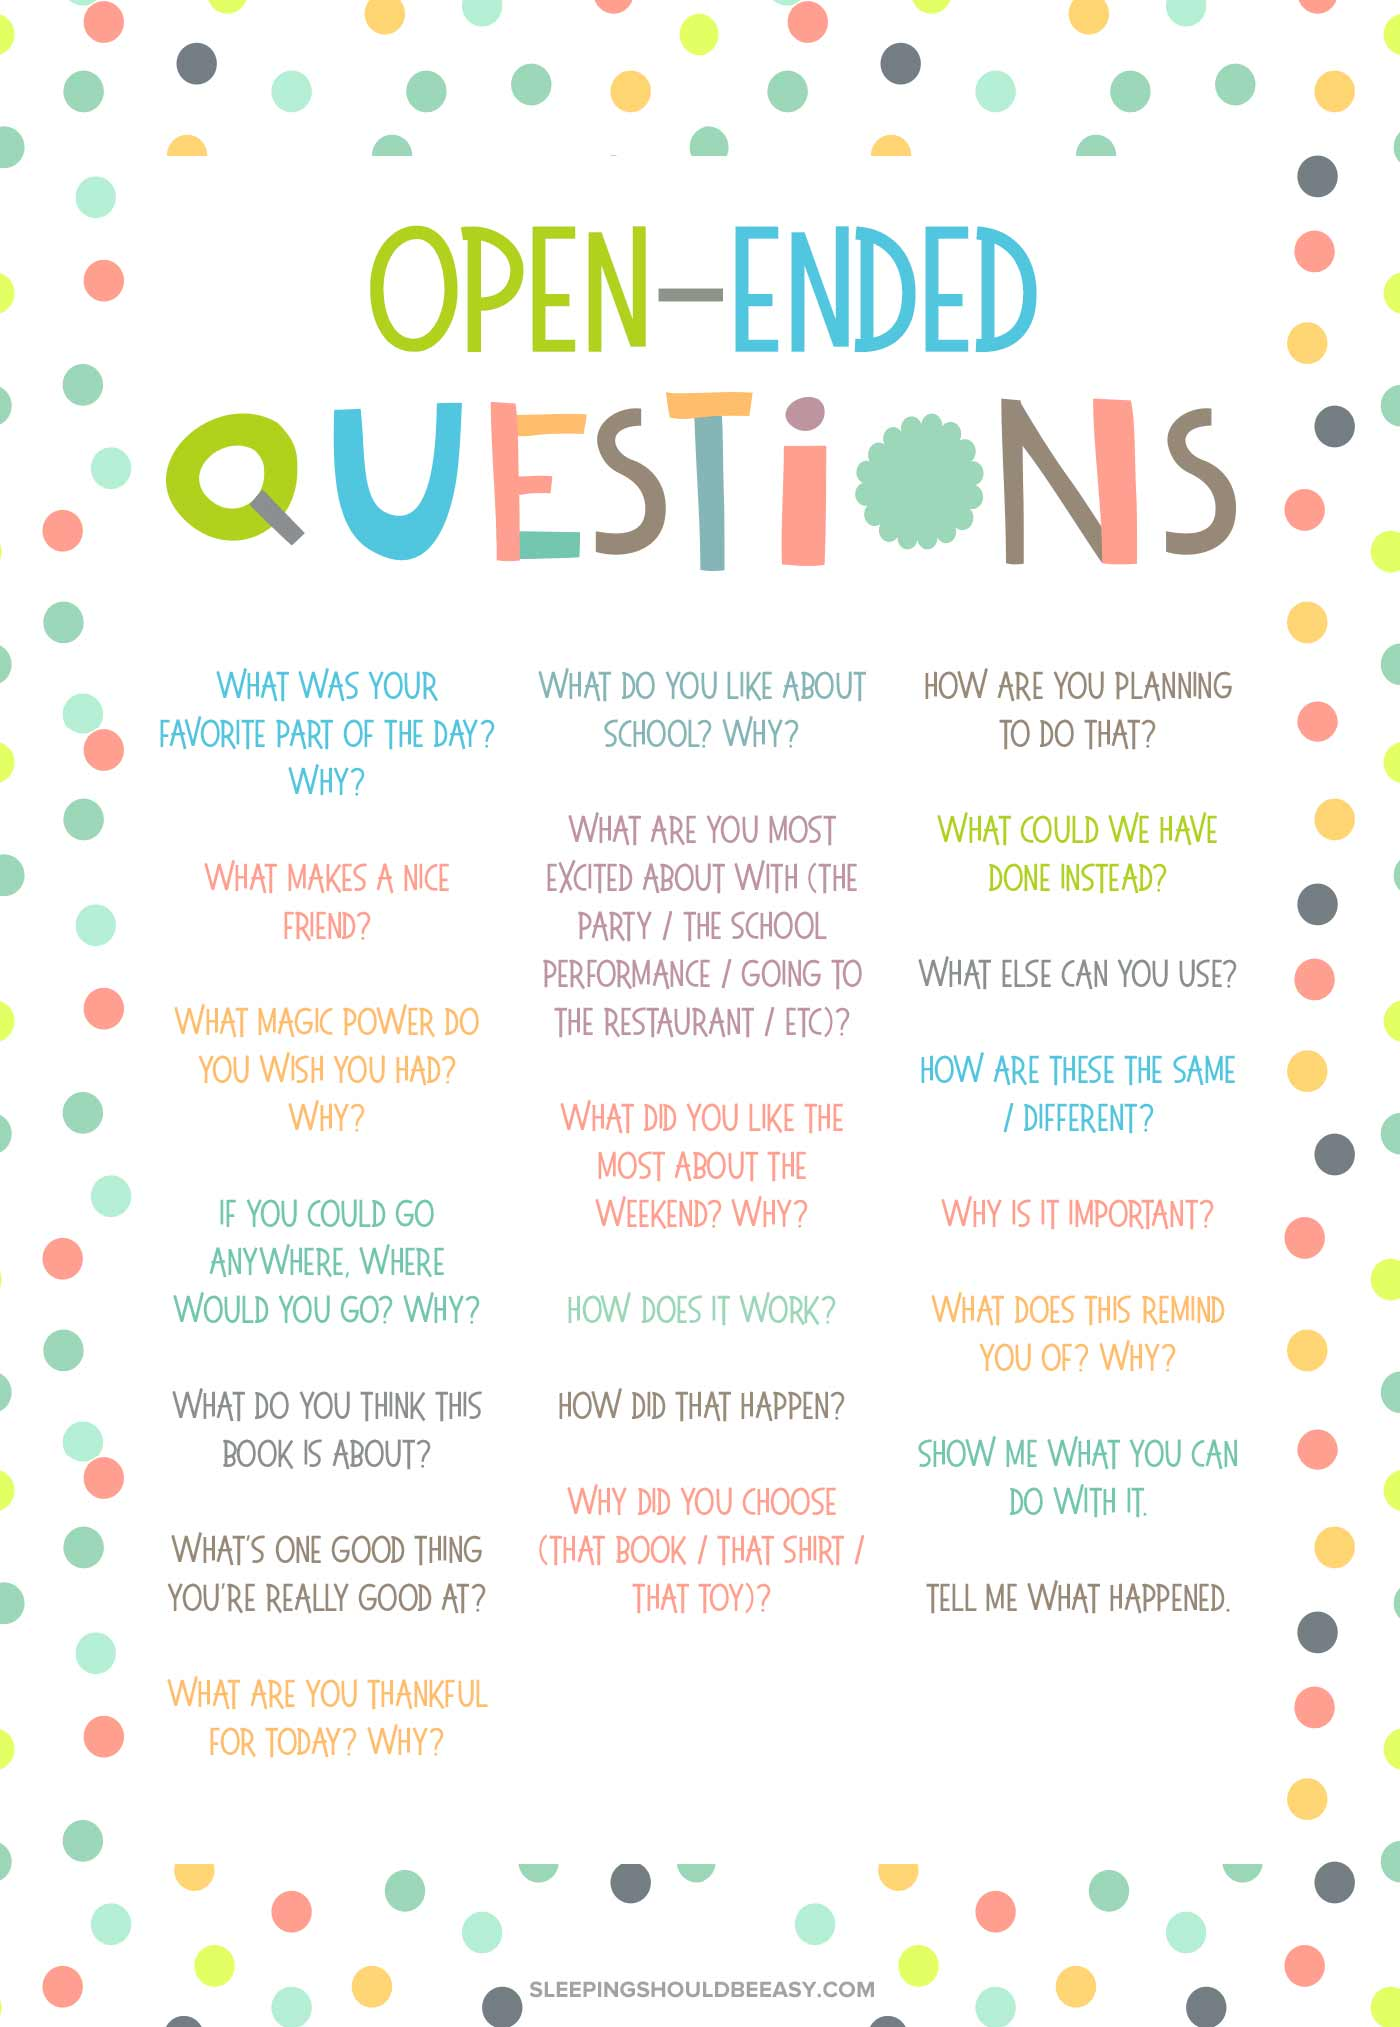 Getting To Know You Questions For Kids